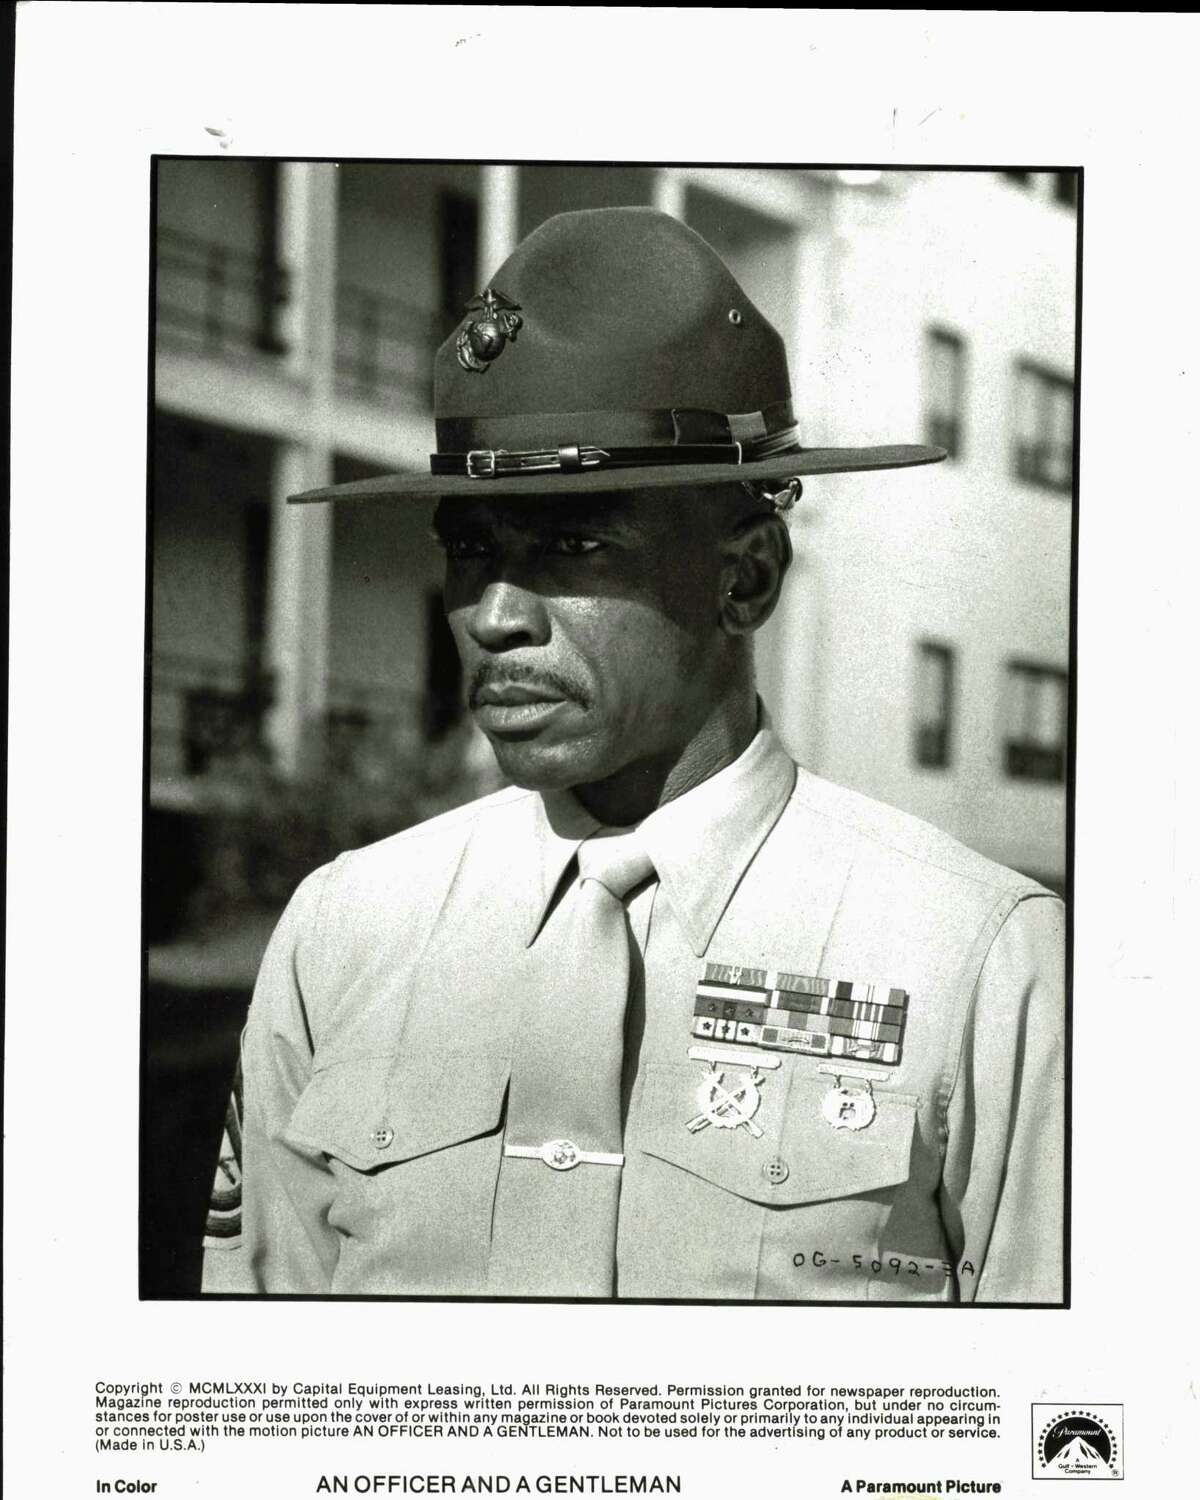 """Louis Gossett, Jr. portrays the domineering marine drill instructor, Gunnery Sergeant Emil Foley in Paramount Pictures' """"An Officer and a Gentleman."""" films"""